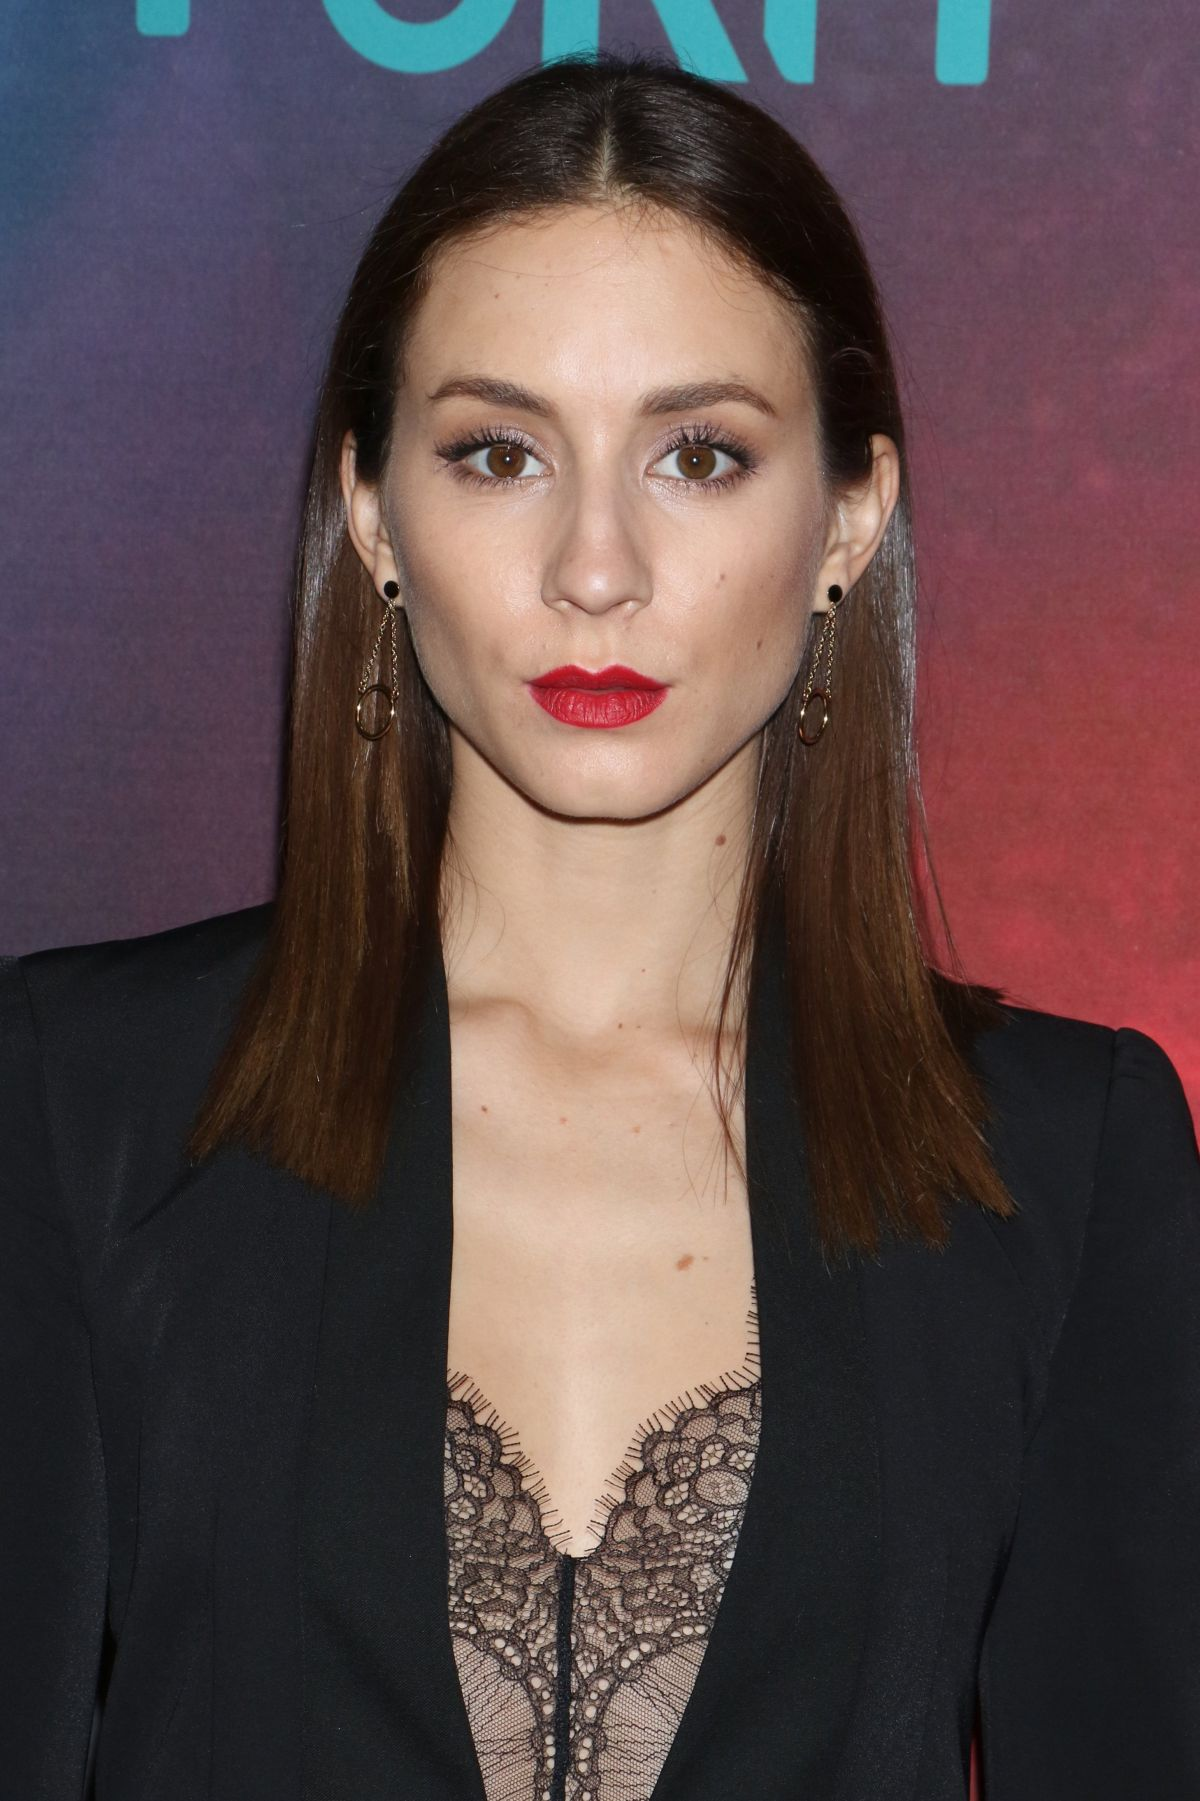 Troian Bellisario At 2017 Freeform Upfront in NYC   troian-bellisario-at-2017-freeform-upfront-in-nyc_5